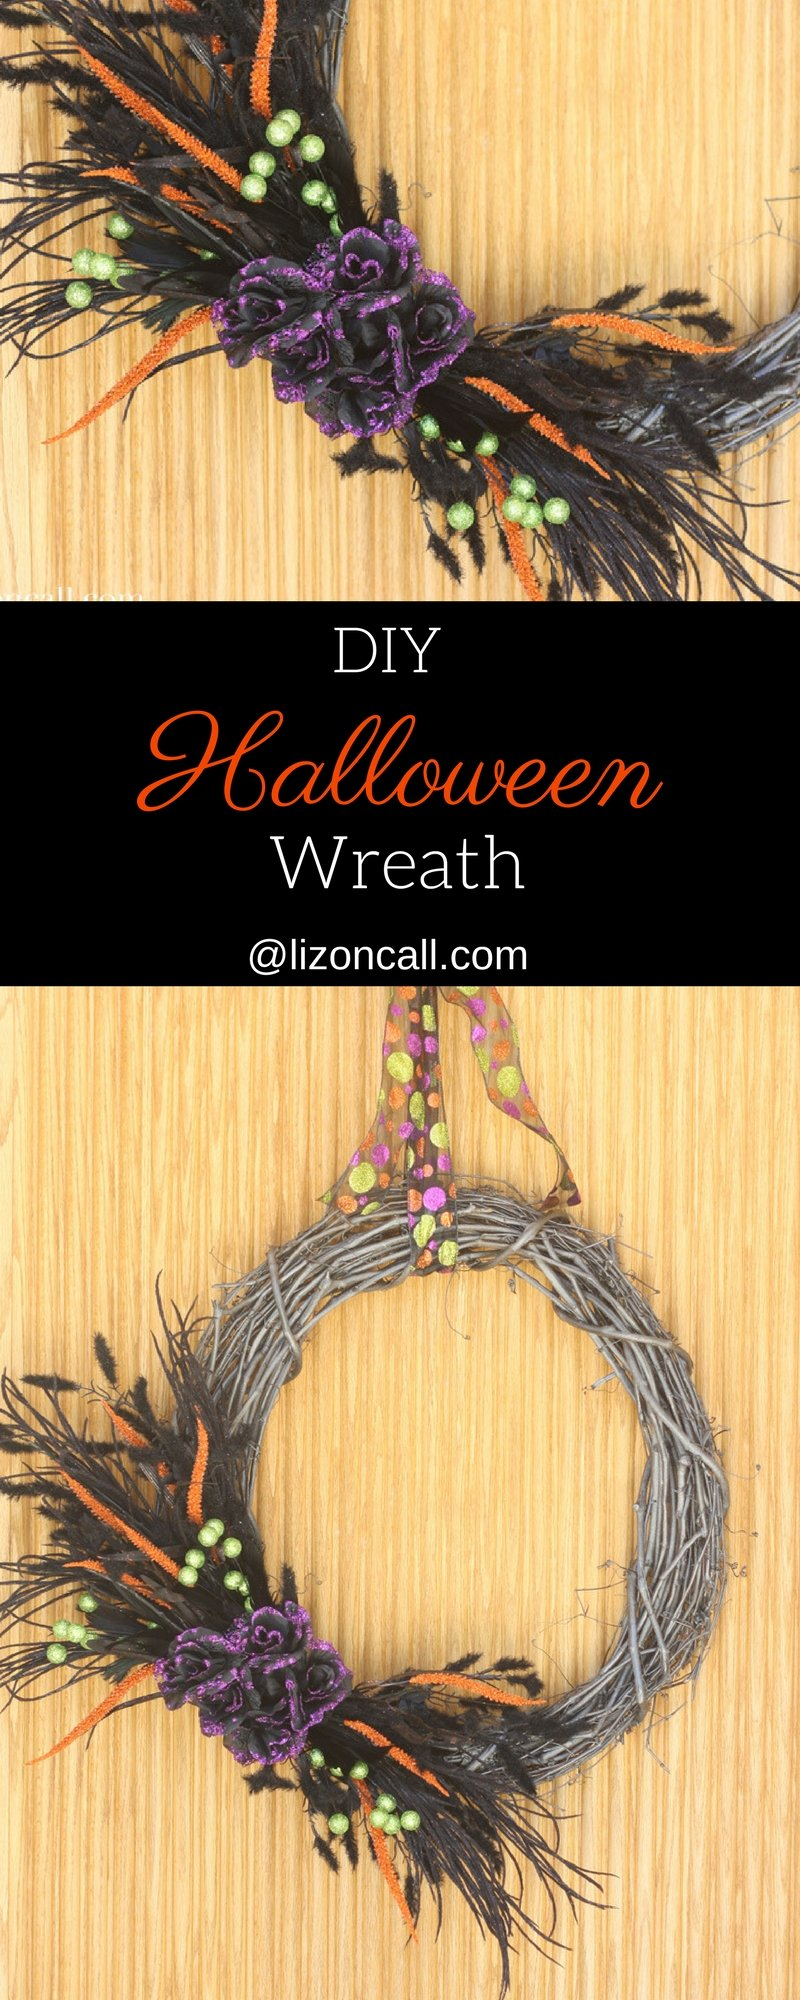 Whip up this DIY Halloween wreath in under 30 minutes for a quick decoration to add to your front door.